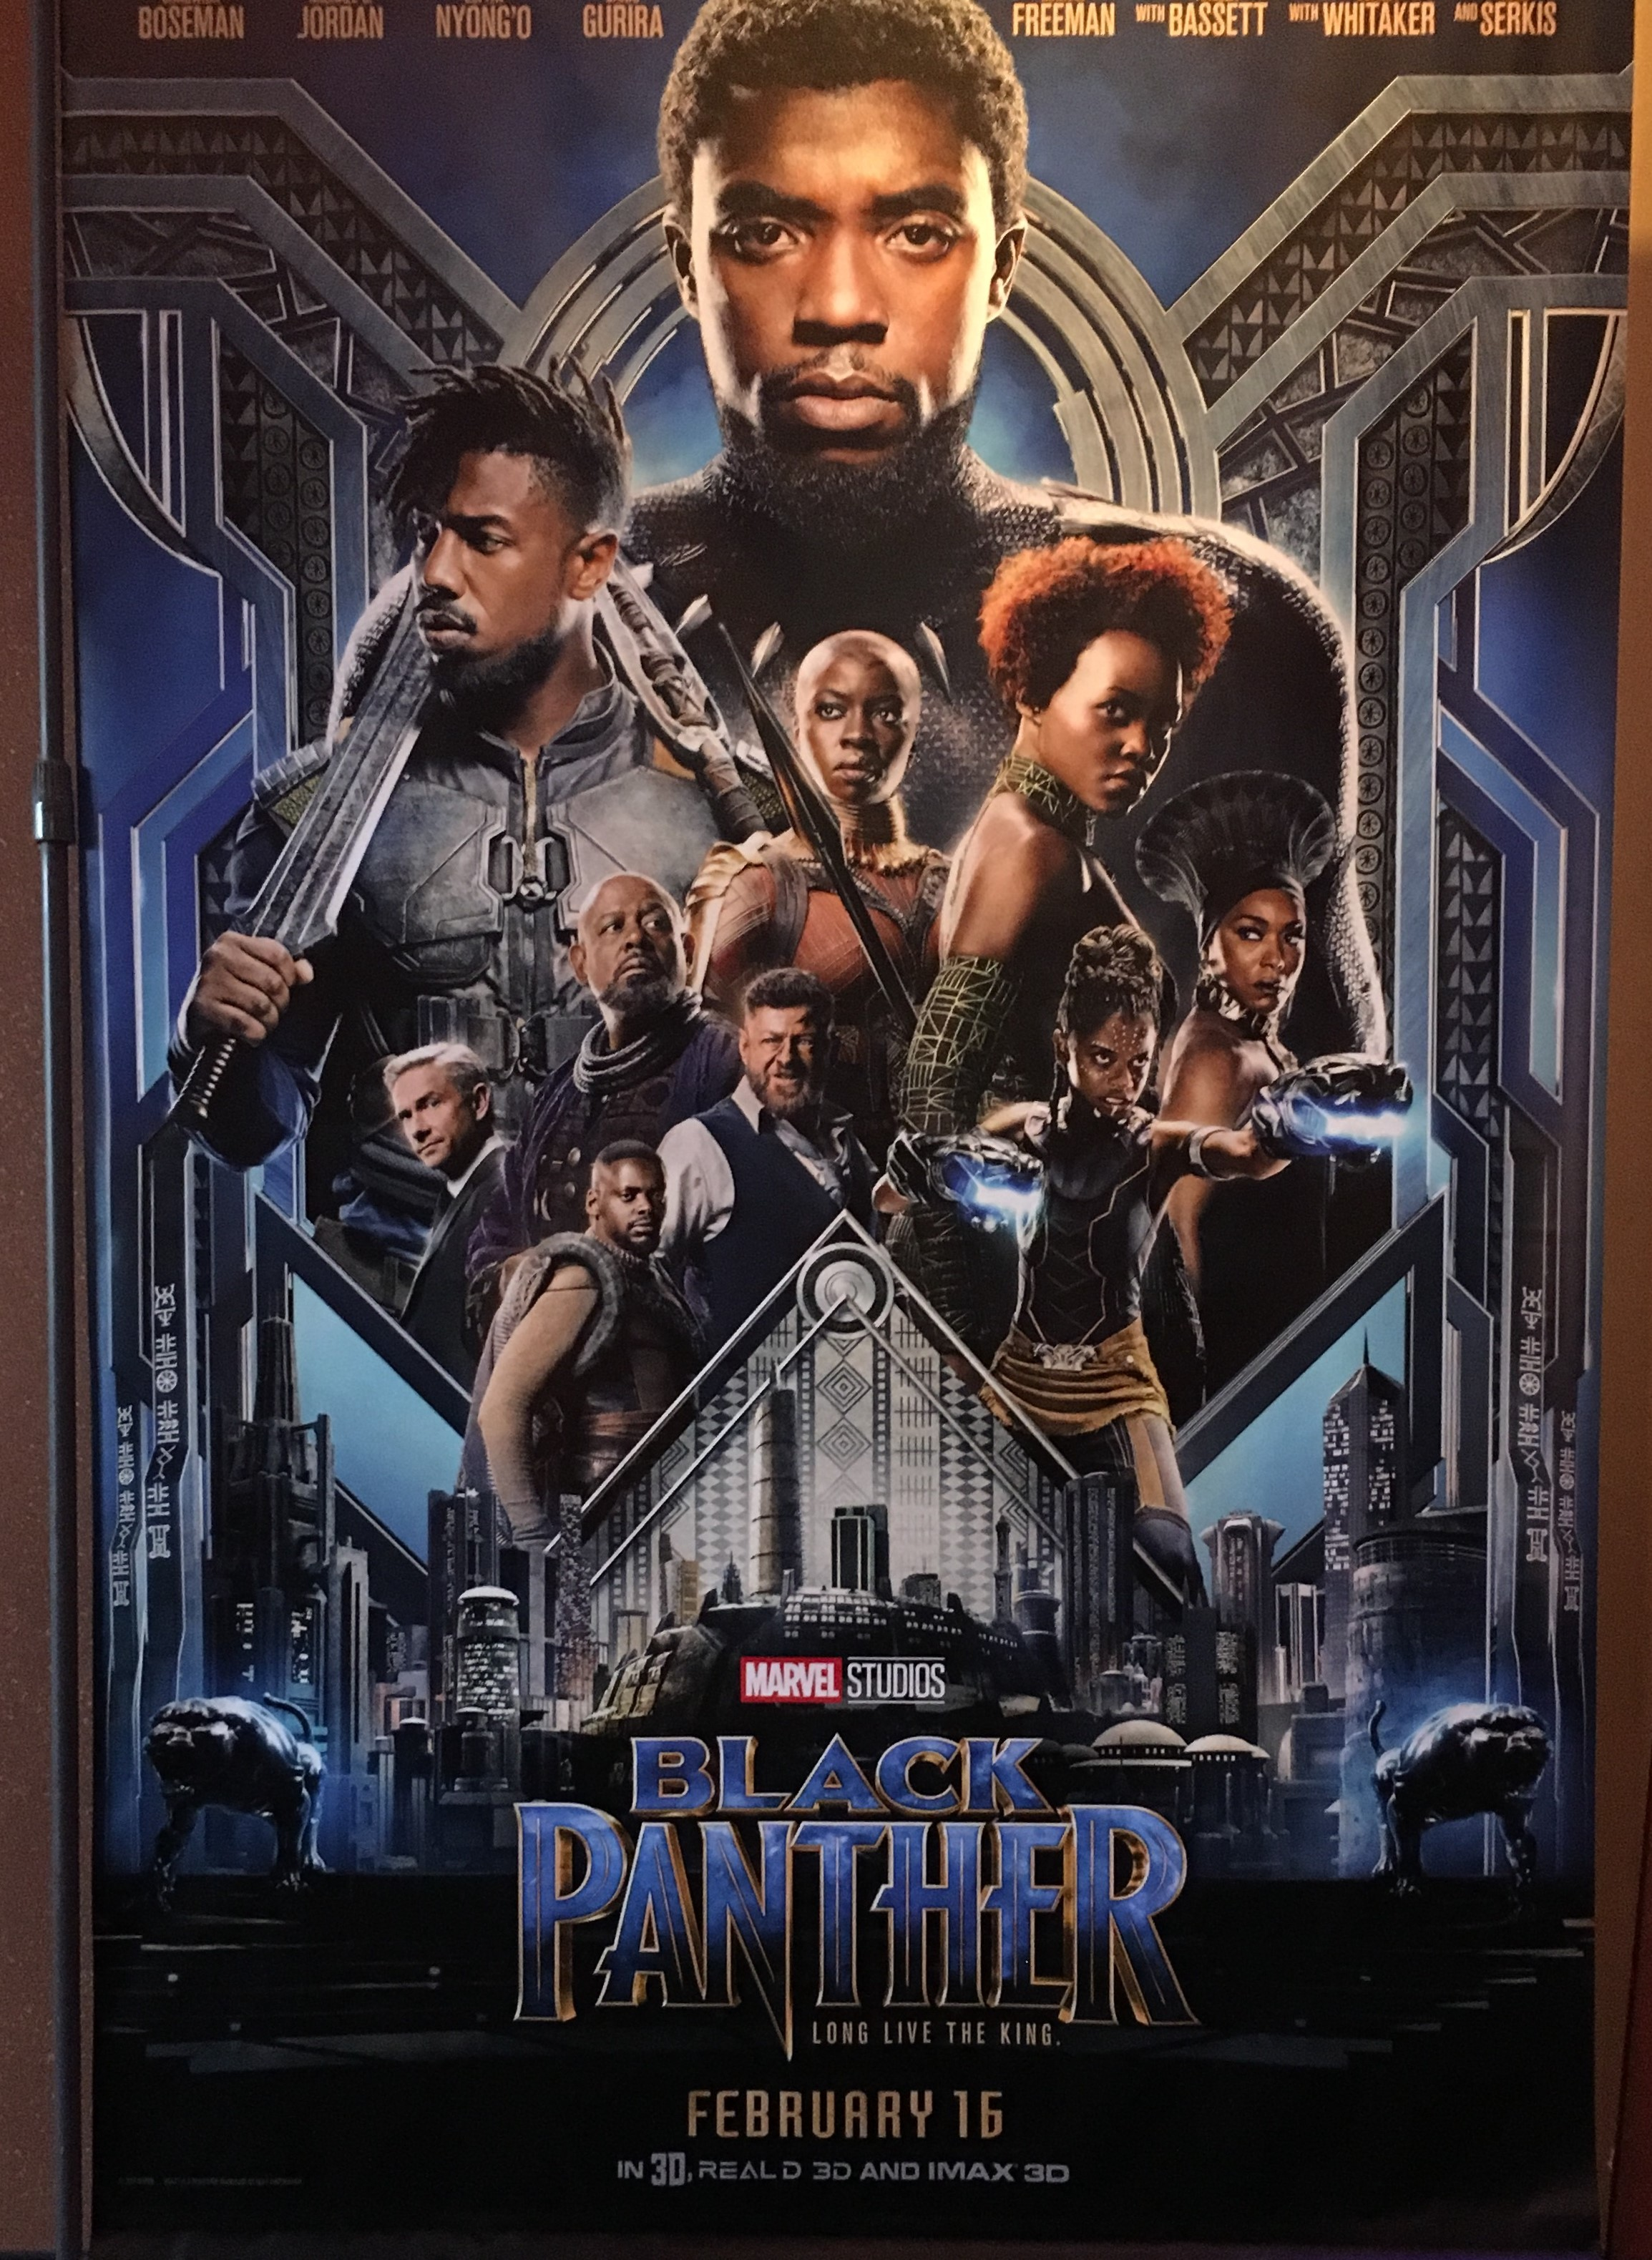 Black Panther Offers a Unique View of African Culture